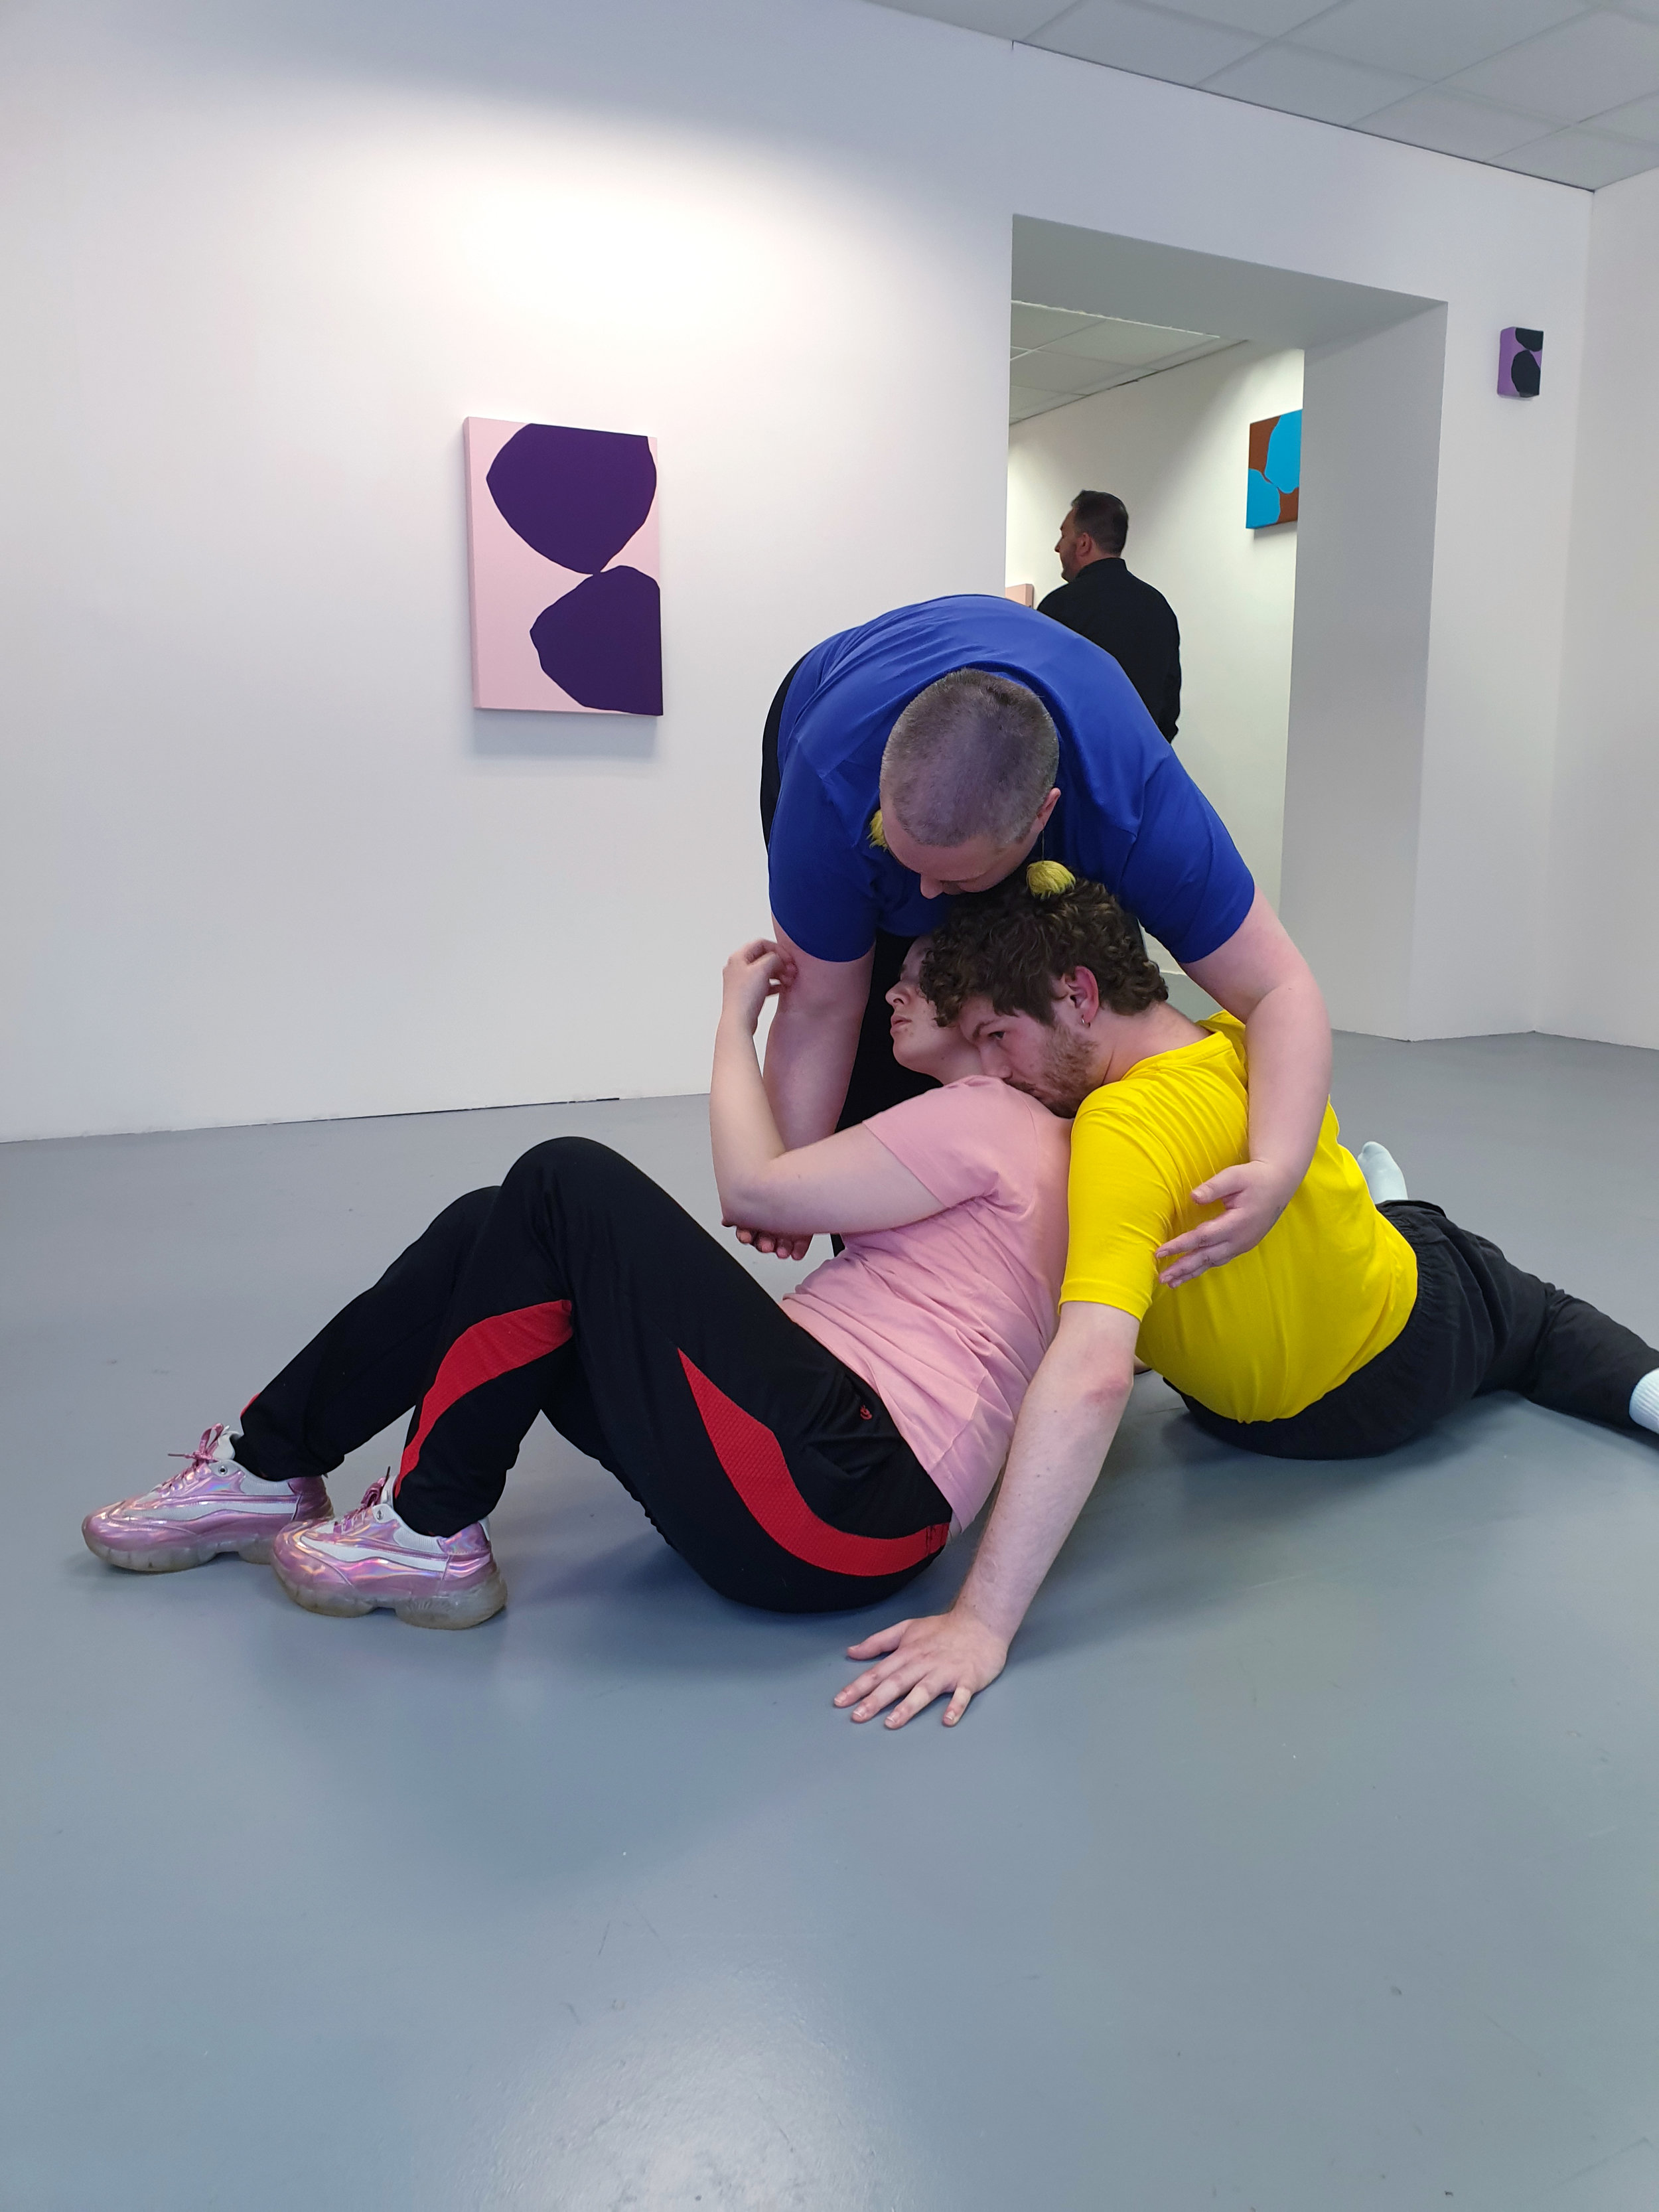 Untitled Performance for 'Somewhere In Between'  Vane, Newcastle, 17.07.19  Performers: Ciara Lenihan, Rhys Patterson, Sarah Grundy Li, John Perangie, Lady Kitt